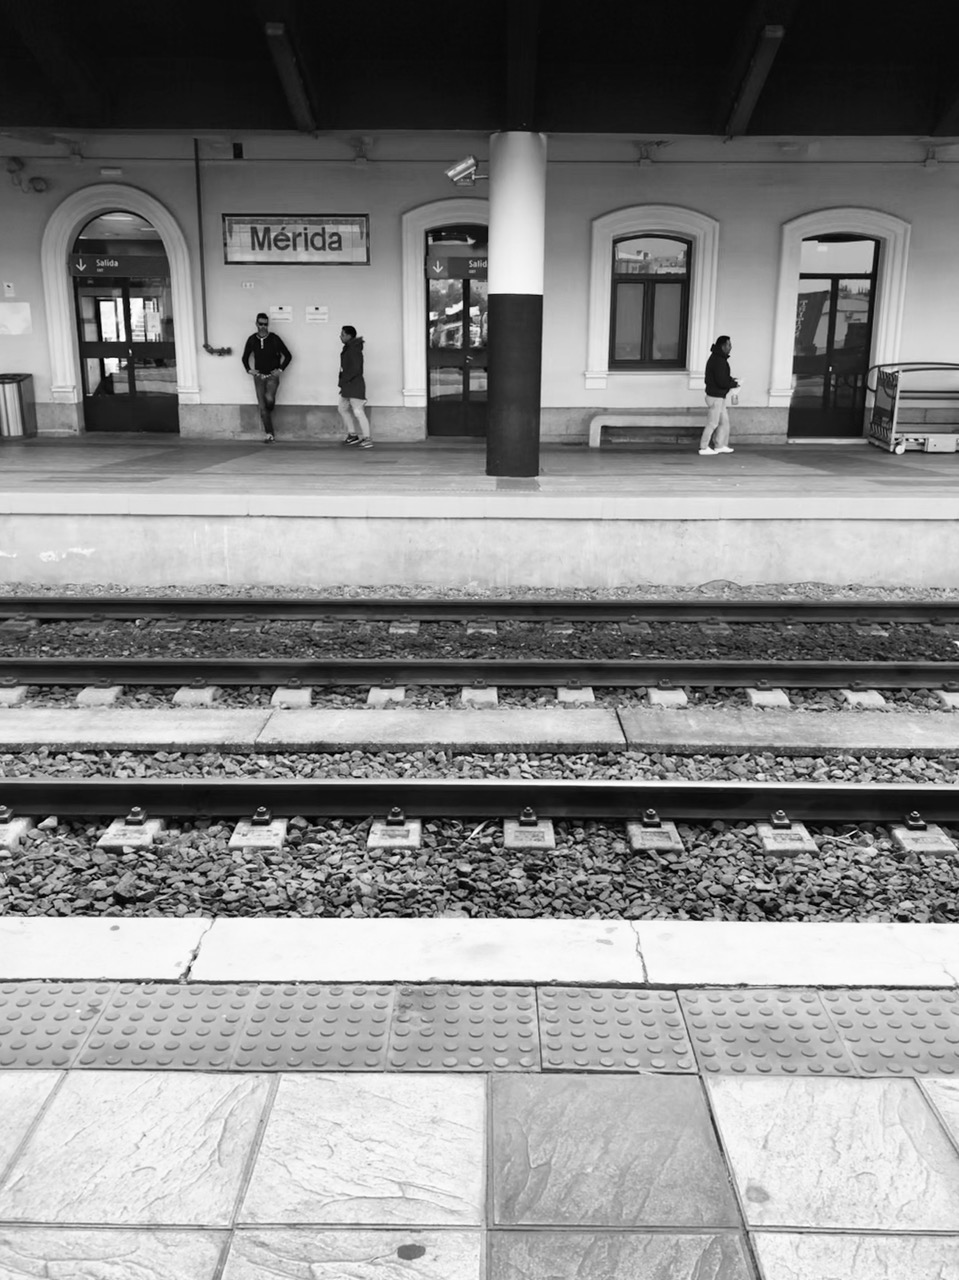 Train platform view in Merida, Spain. (Photo: Gavin McCrory)